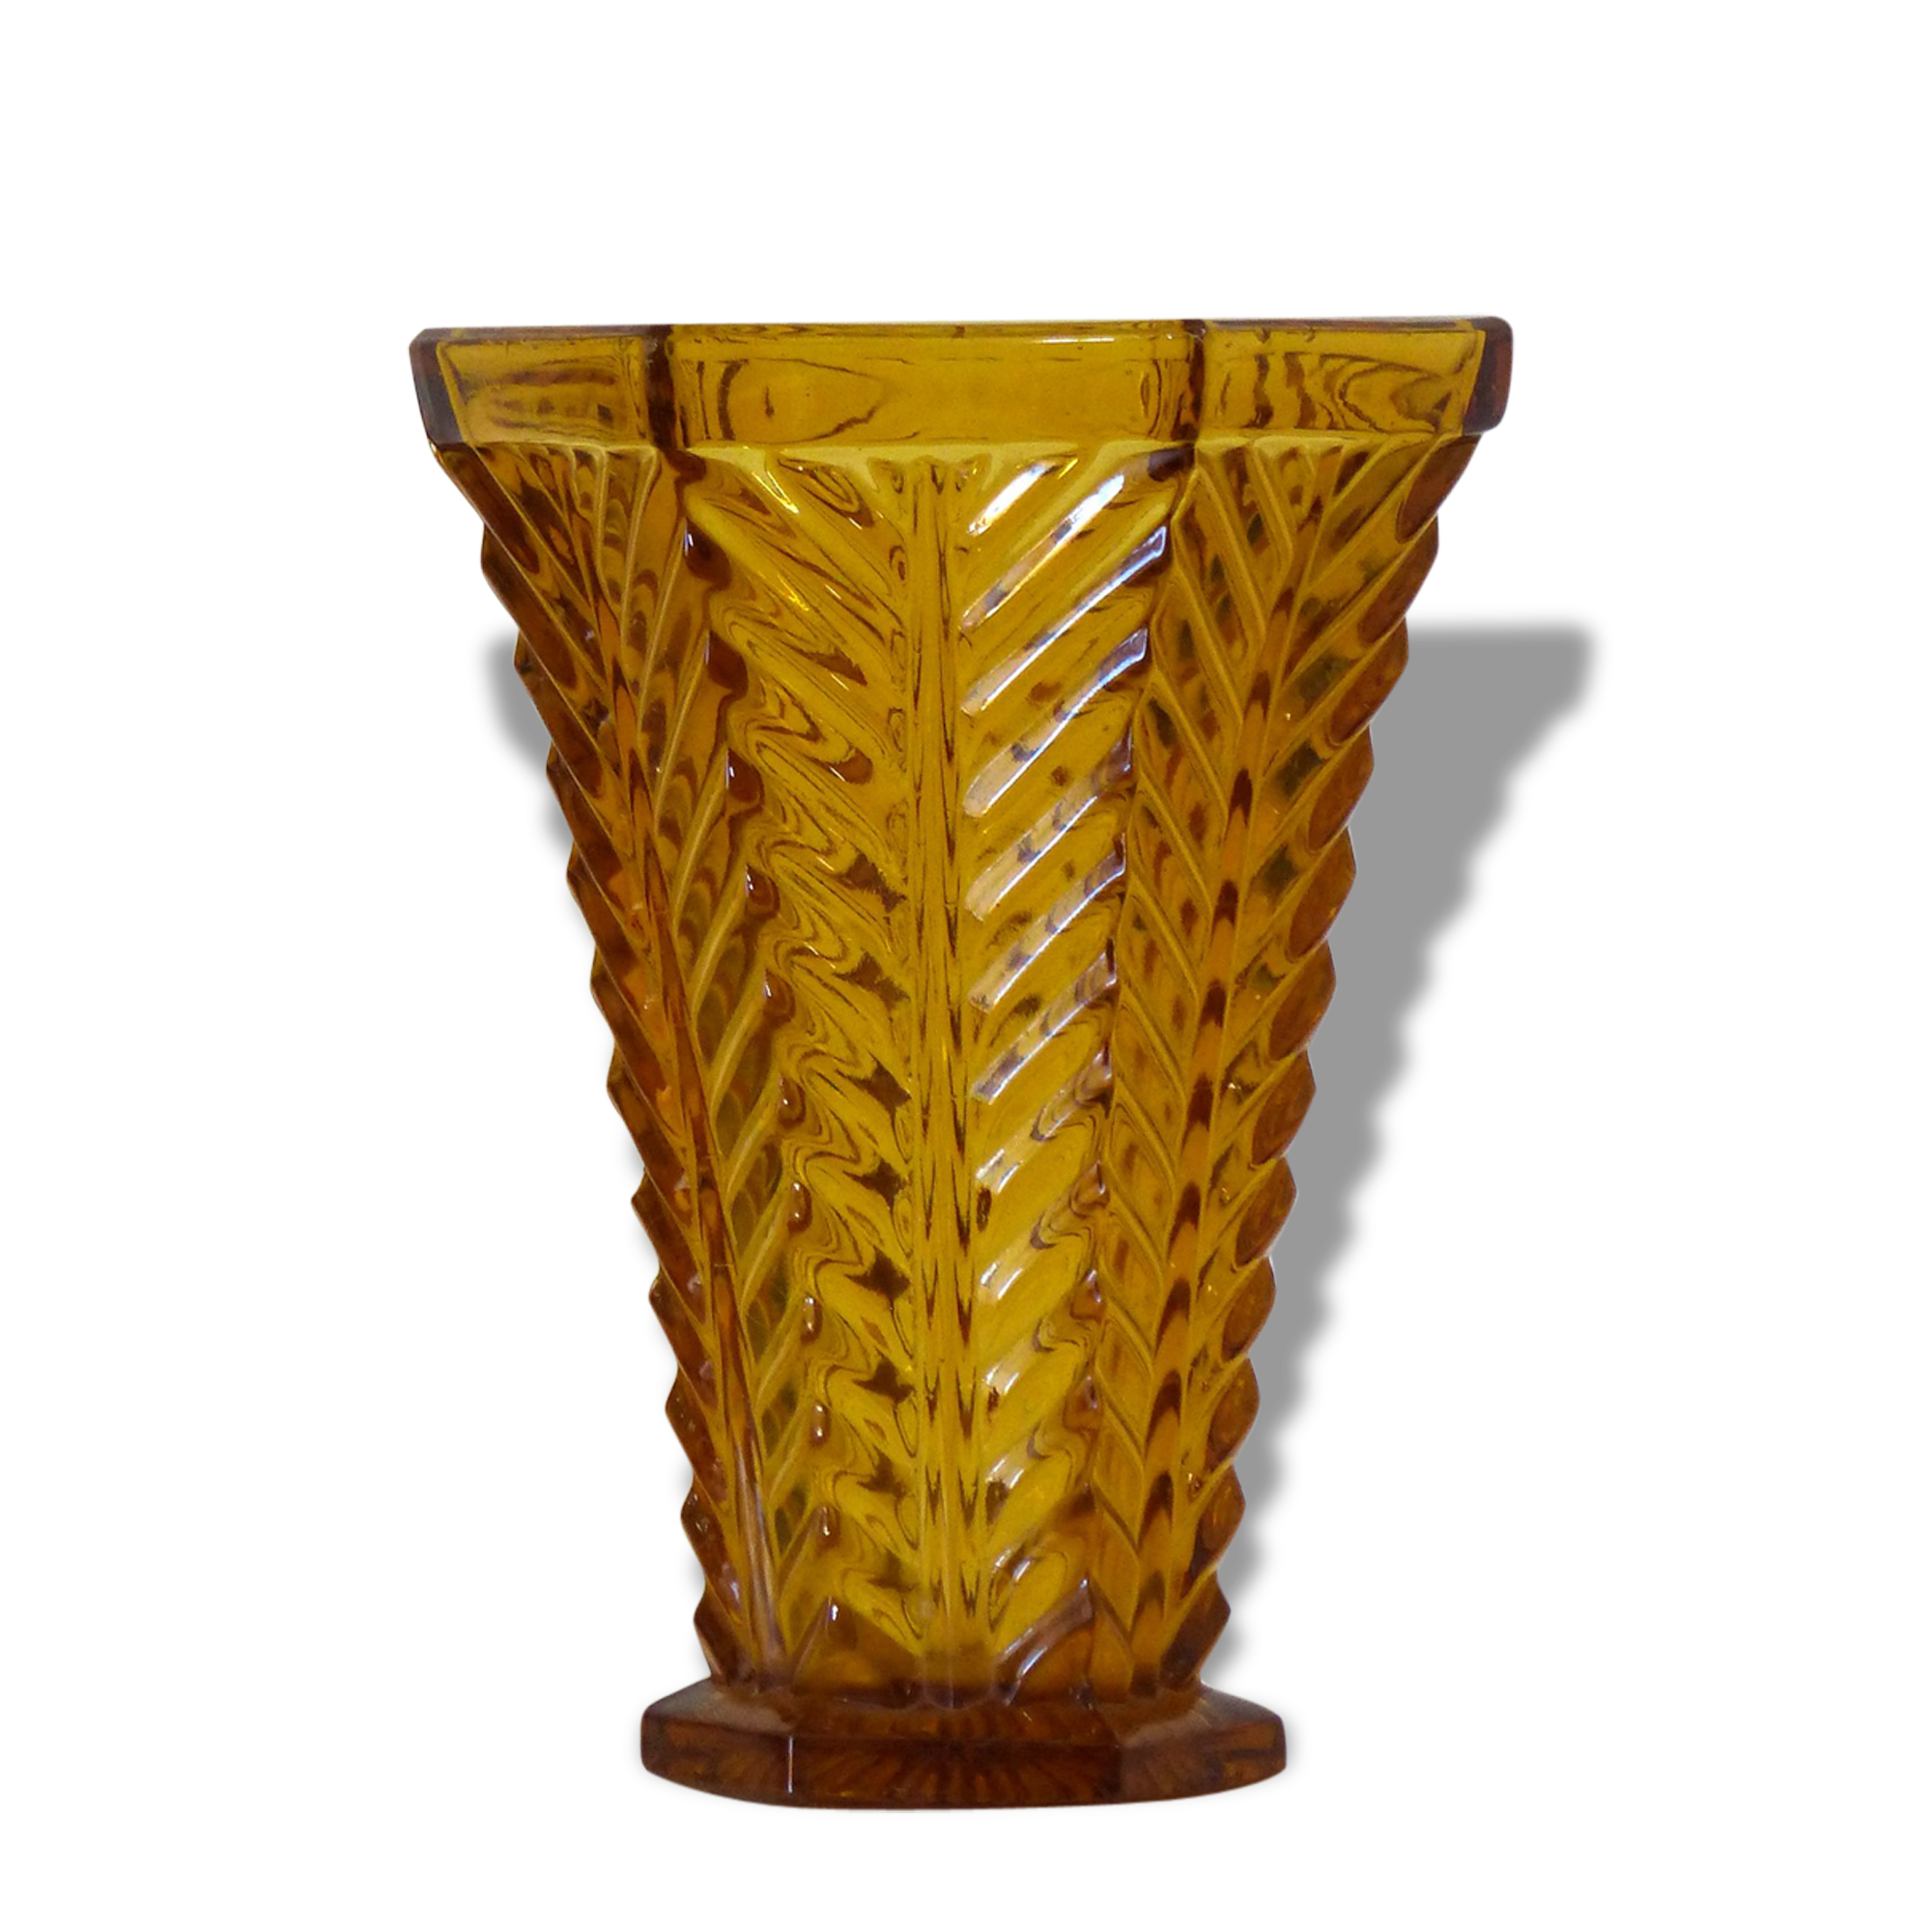 Grand vase en verre fashion designs - Grand vase en verre transparent ...